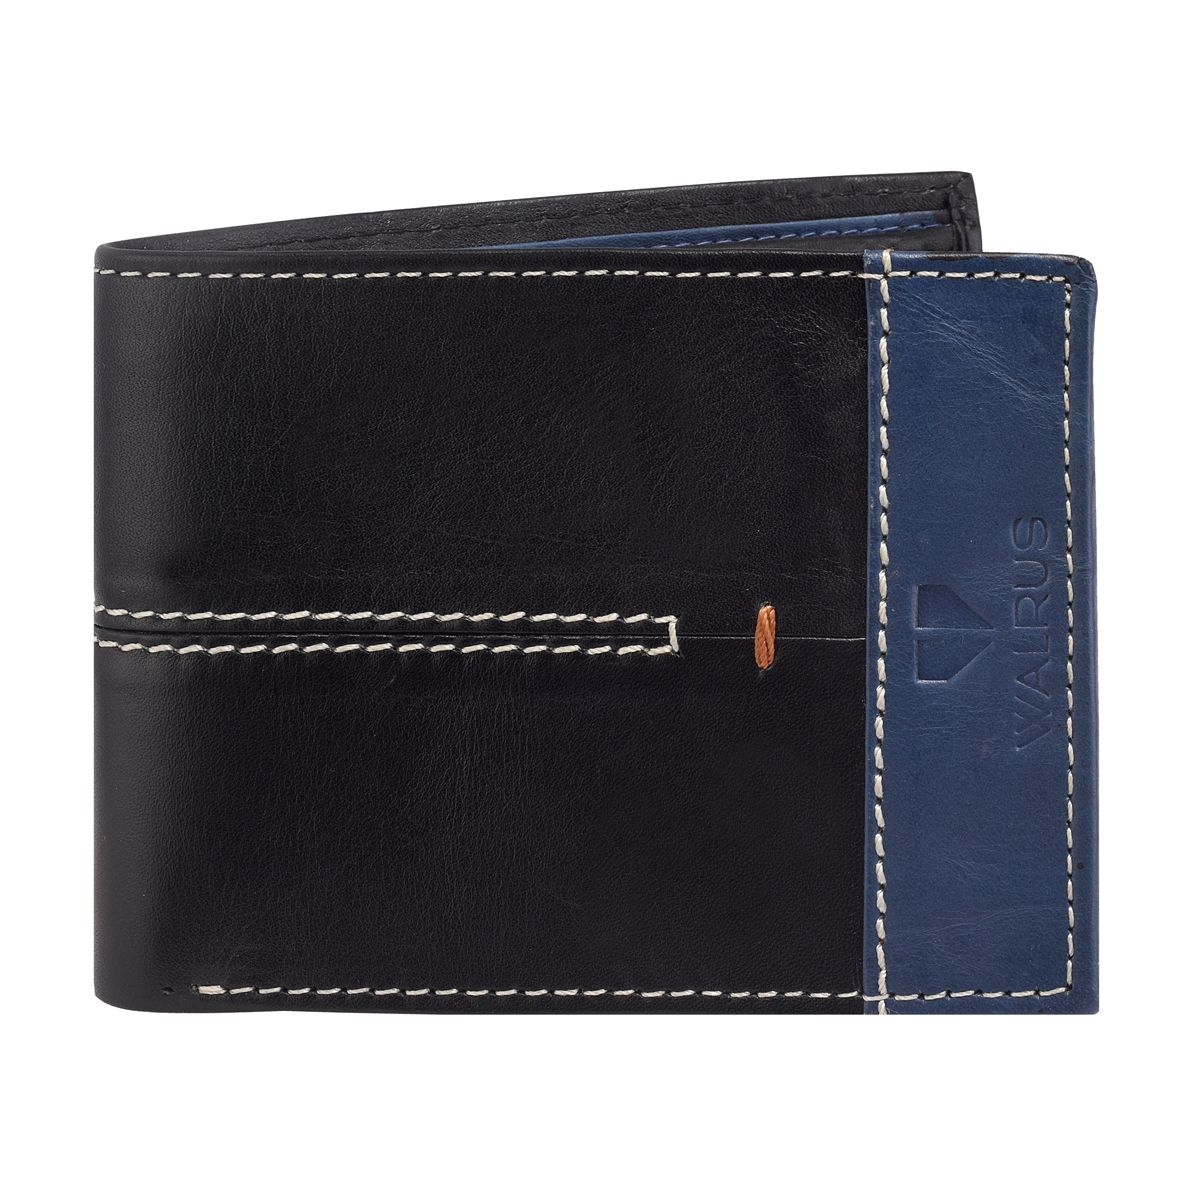 Walrus Marverick Black & Blue Color Men Leather Wallet- WW-MVK-II-0203